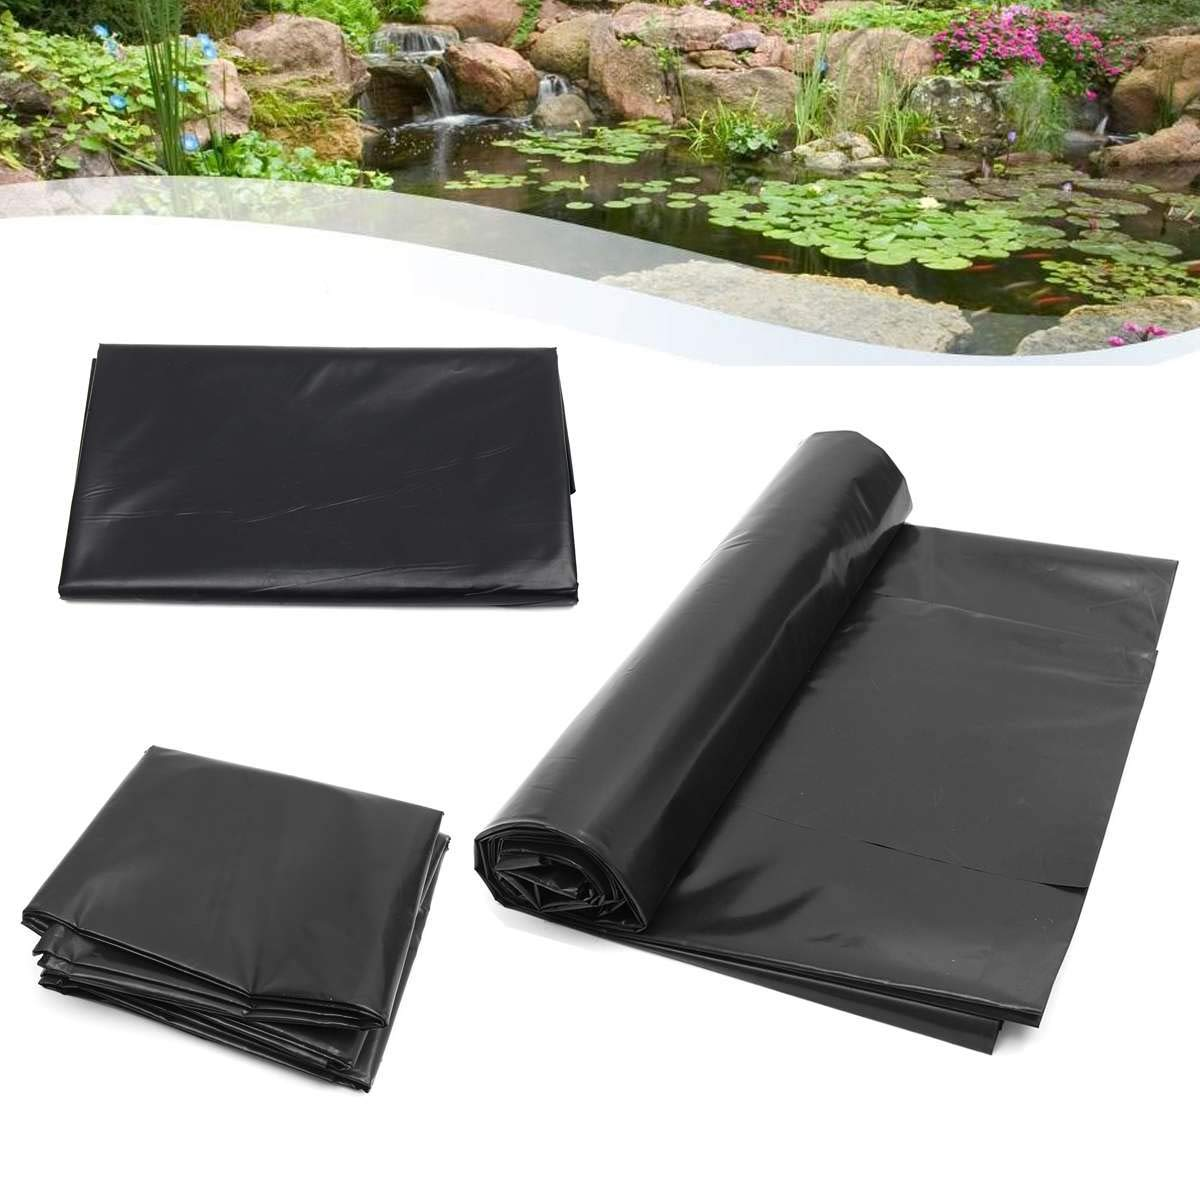 5'x10' HDPE Pond Liner Heavy Landscaping Garden Pool Reinforced Waterproof Pool Liners Cloth Fish Breed Pond Liner Membrane by Up To Store